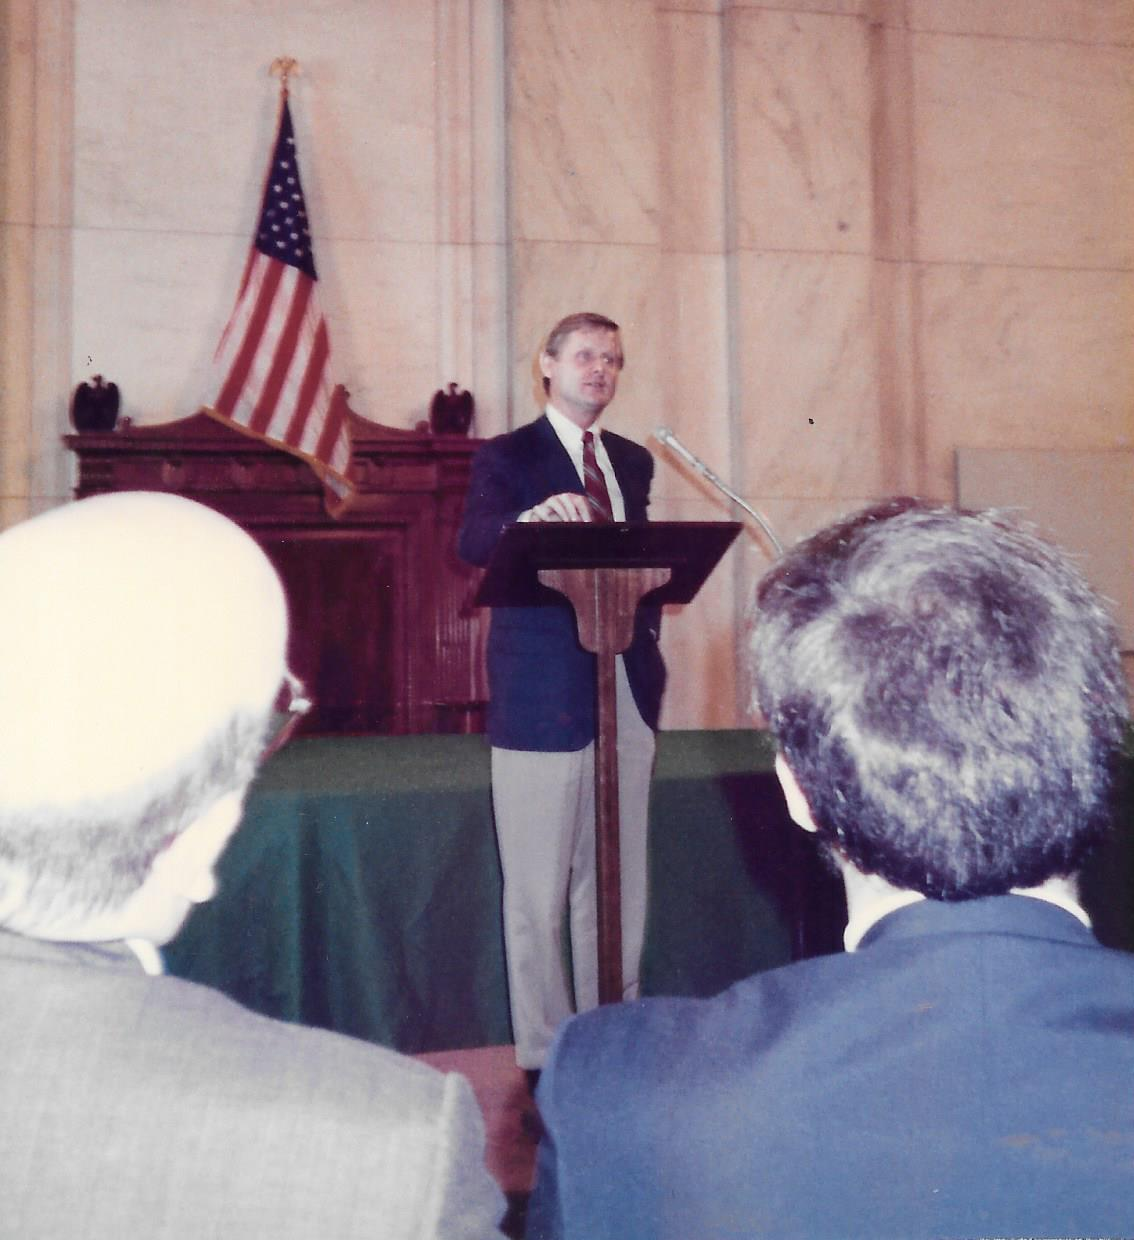 TX Congressman Steve Bartlett  speaking during ADA 1990